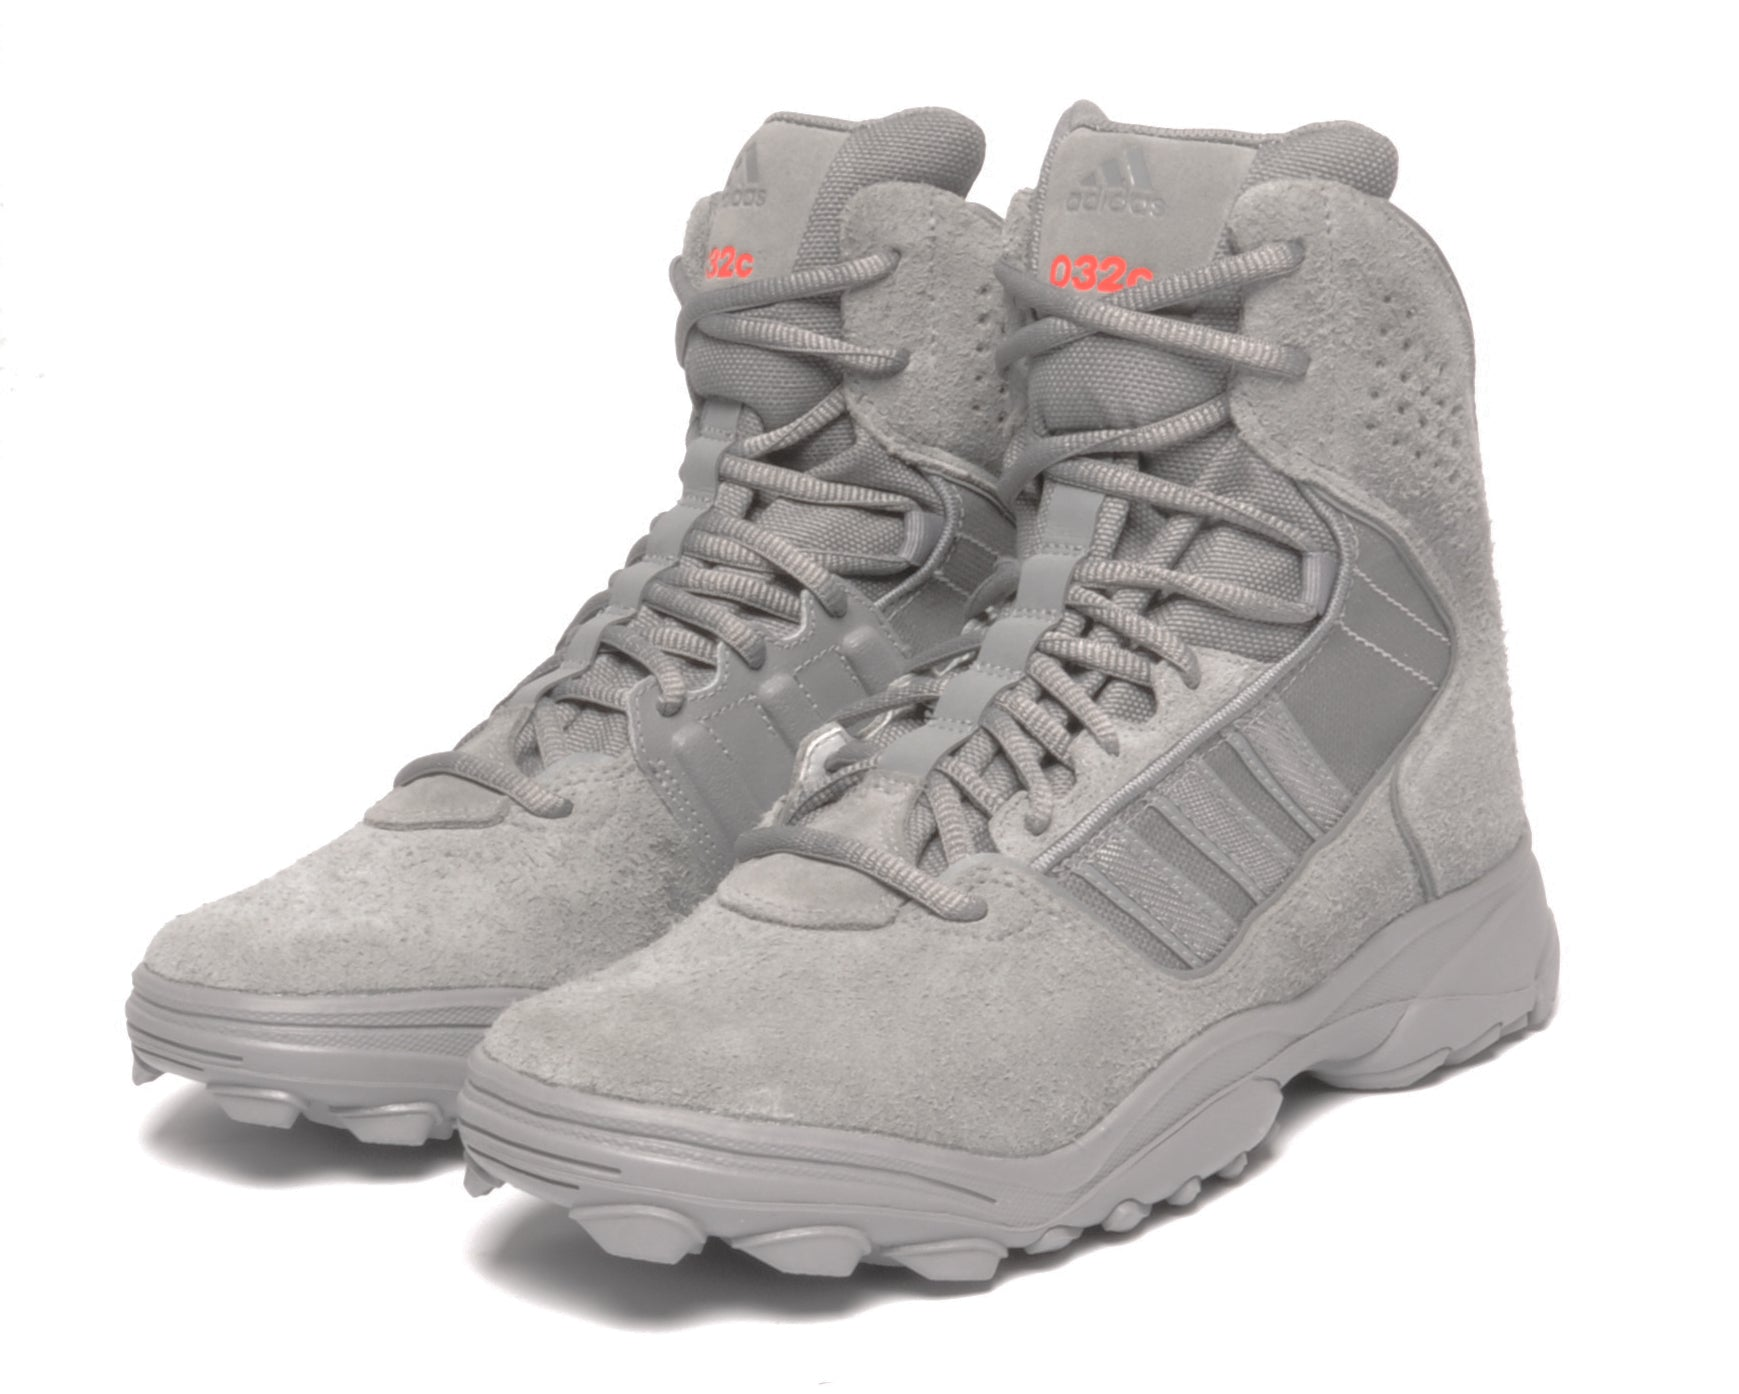 adidas by 032c GSG 9 | 032c Store